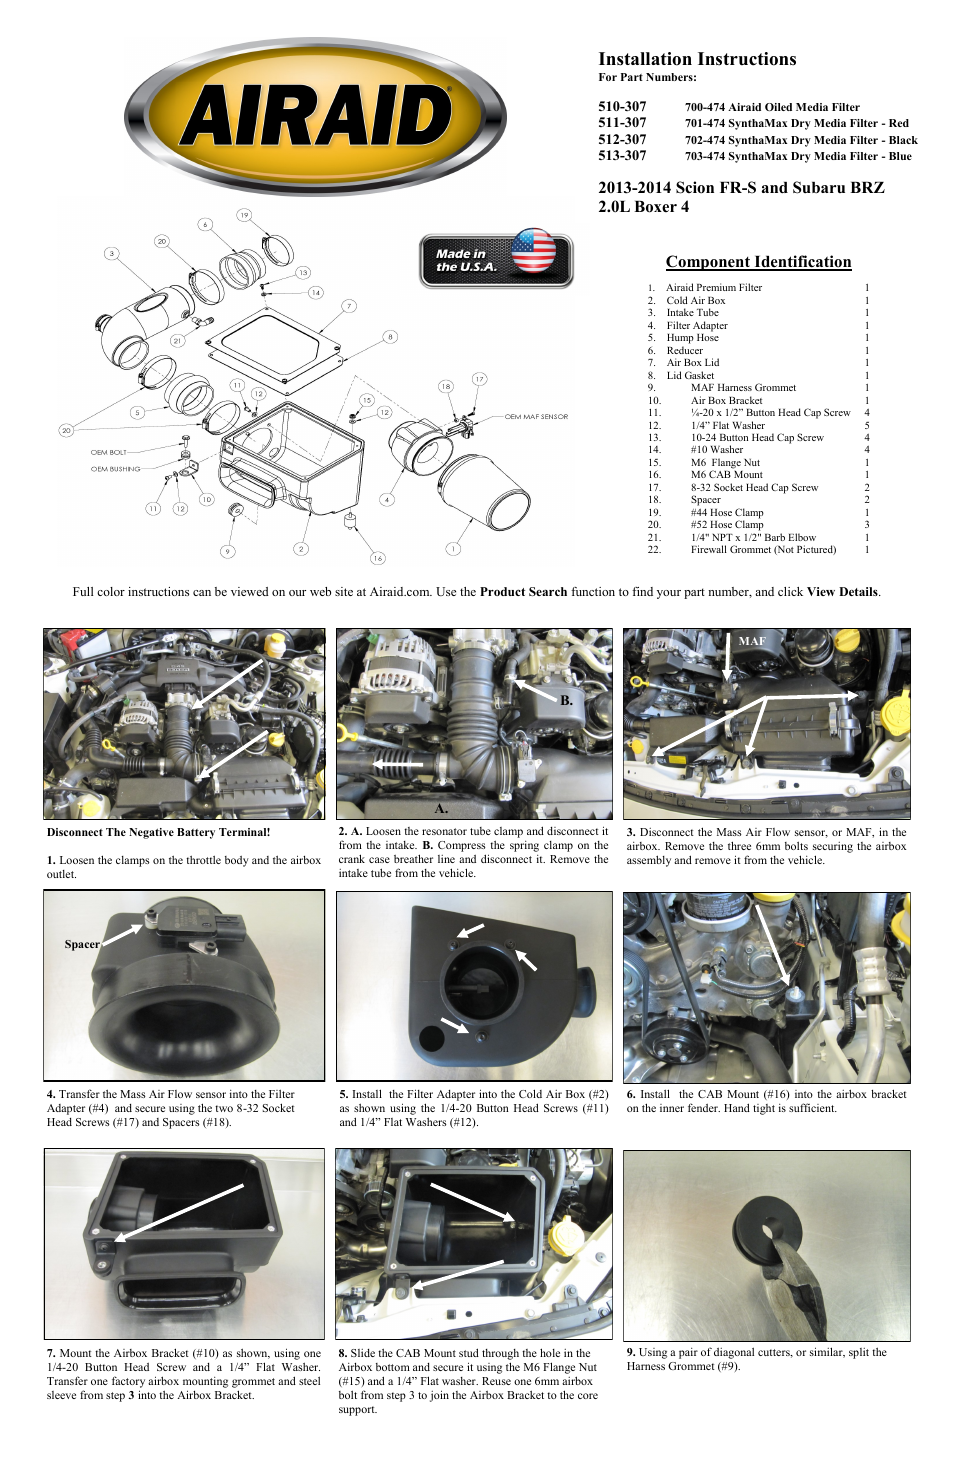 Airaid 510-307 User Manual | 2 pages | Also for: 511-307